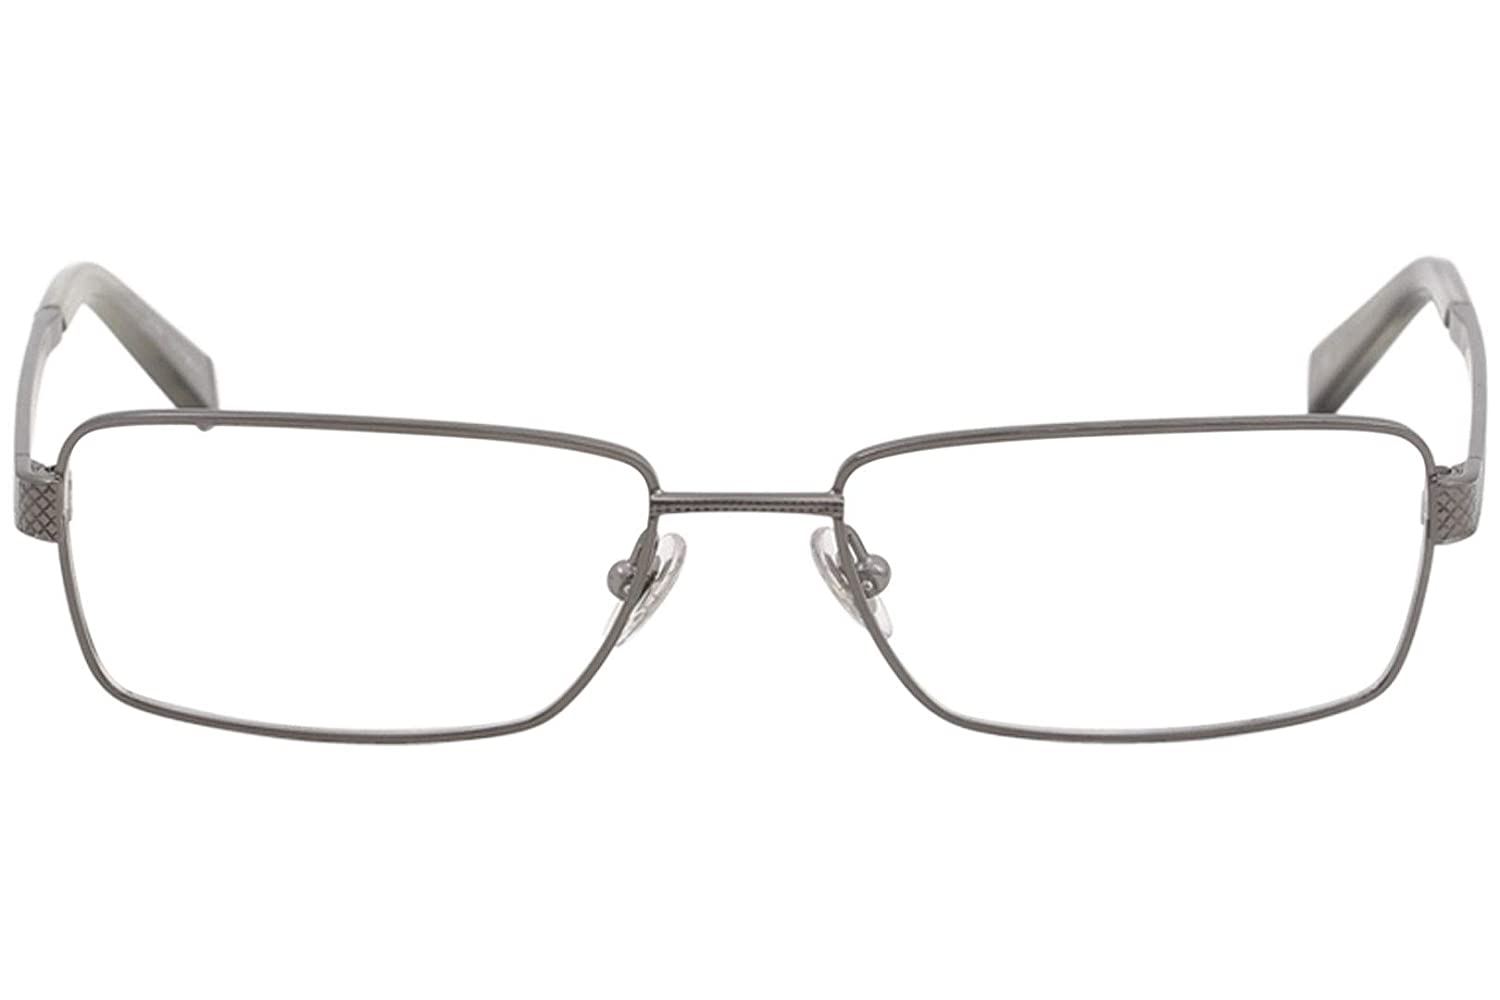 John Varvatos V134 Mens Designer Full-rim Masculine Design High-end Eyeglasses//Eyeglass Frame